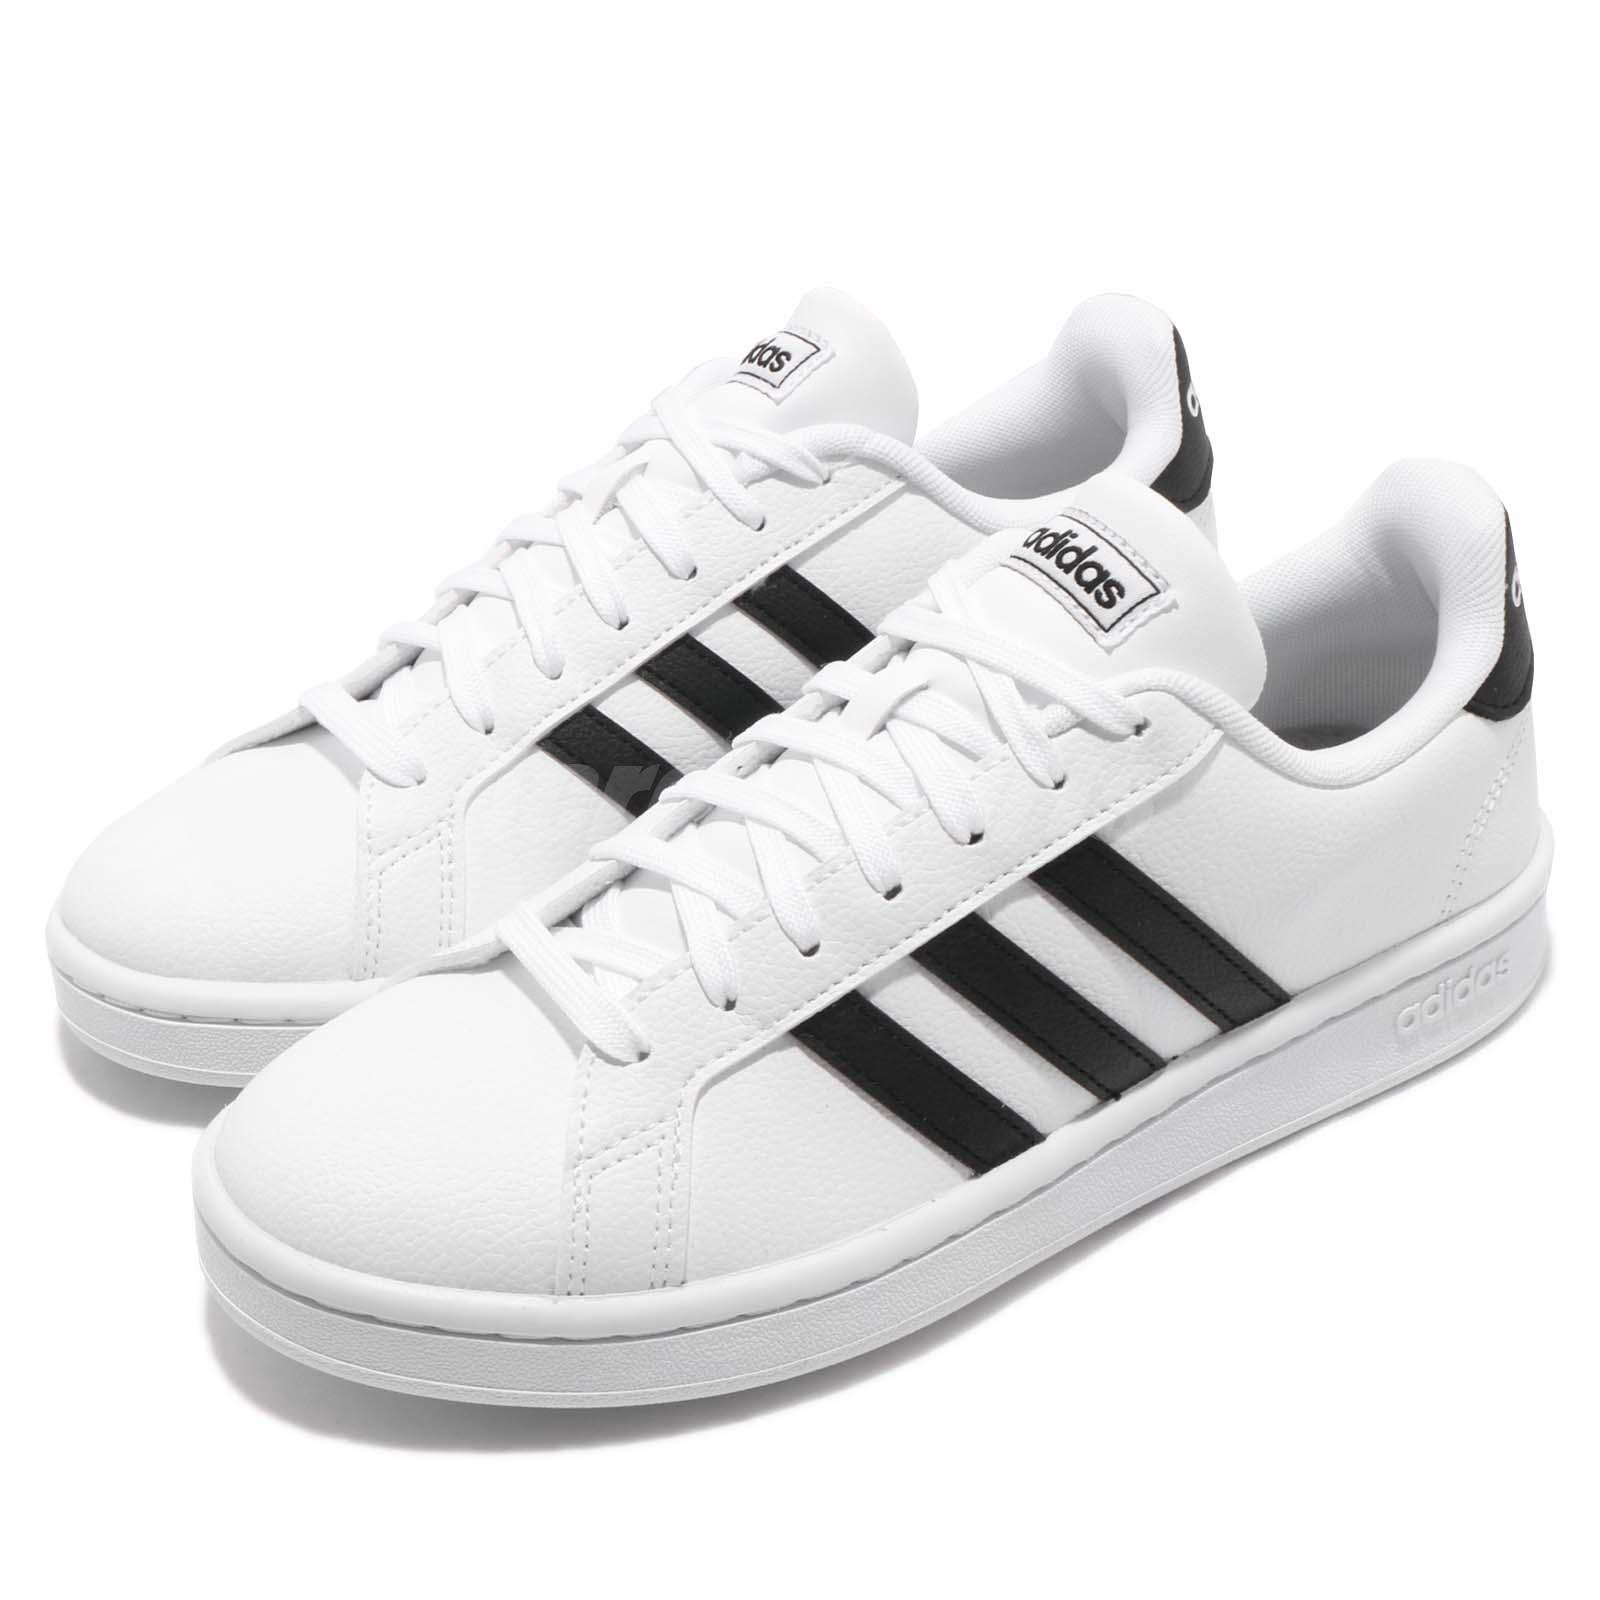 c825a6ab97 Details about adidas Grand Court White Black Women Classic Casual Shoes  Sneakers F36483